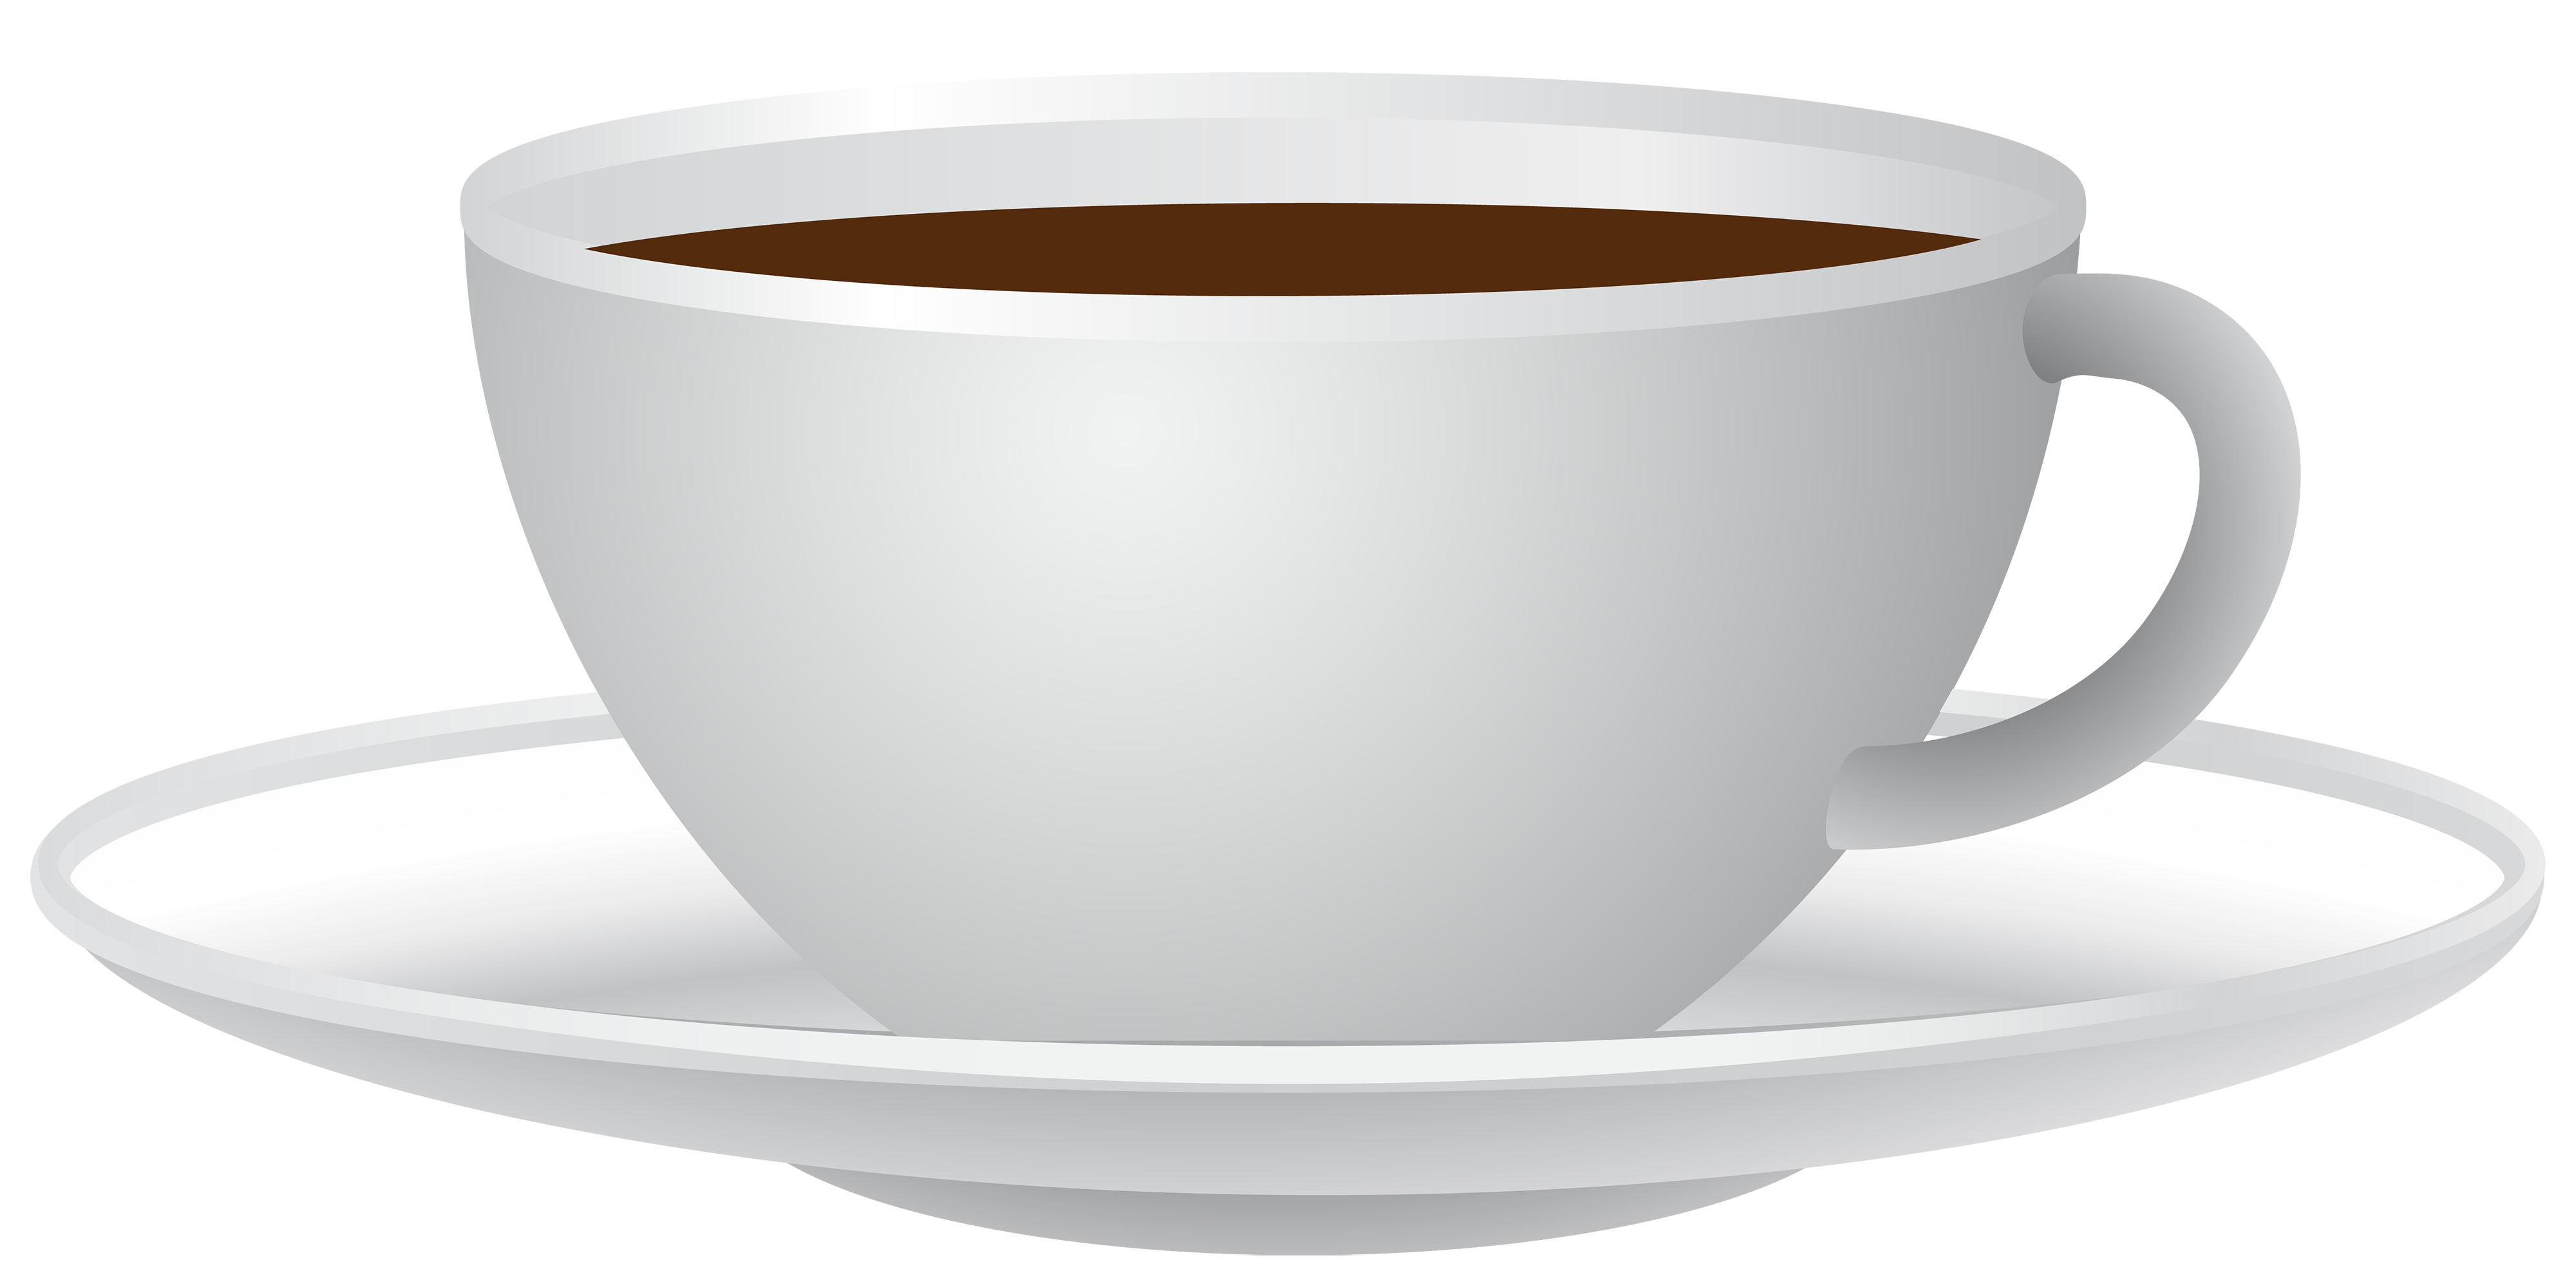 Png Of Cup Of Coffee - Cup, Mug Coffee PNG Image - PurePNG | Free transparent CC0 PNG ...